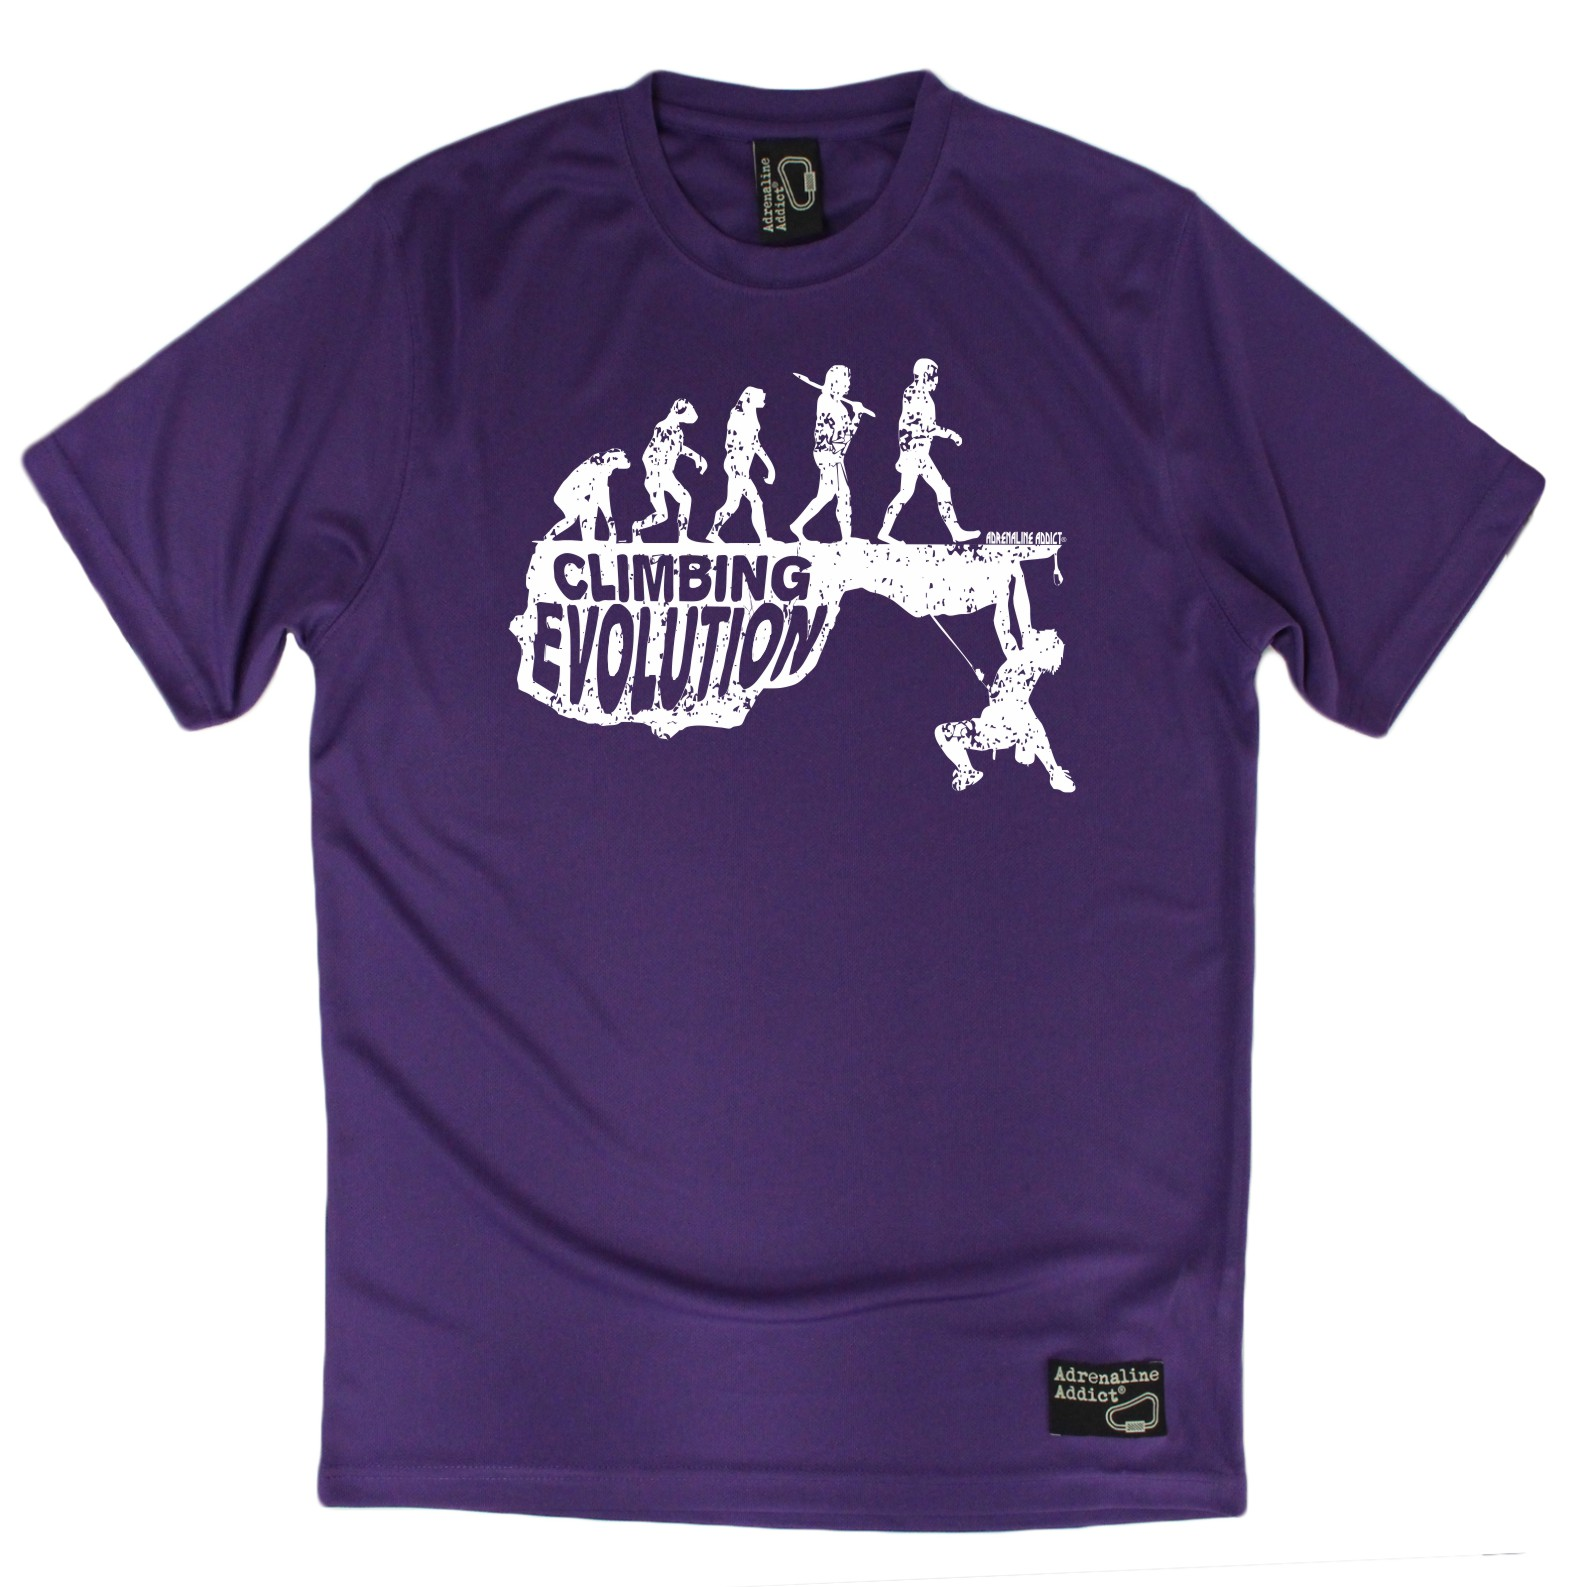 Climbing Evolution Dry Fit Breathable Sports T-SHIRT Adrenaline Addict